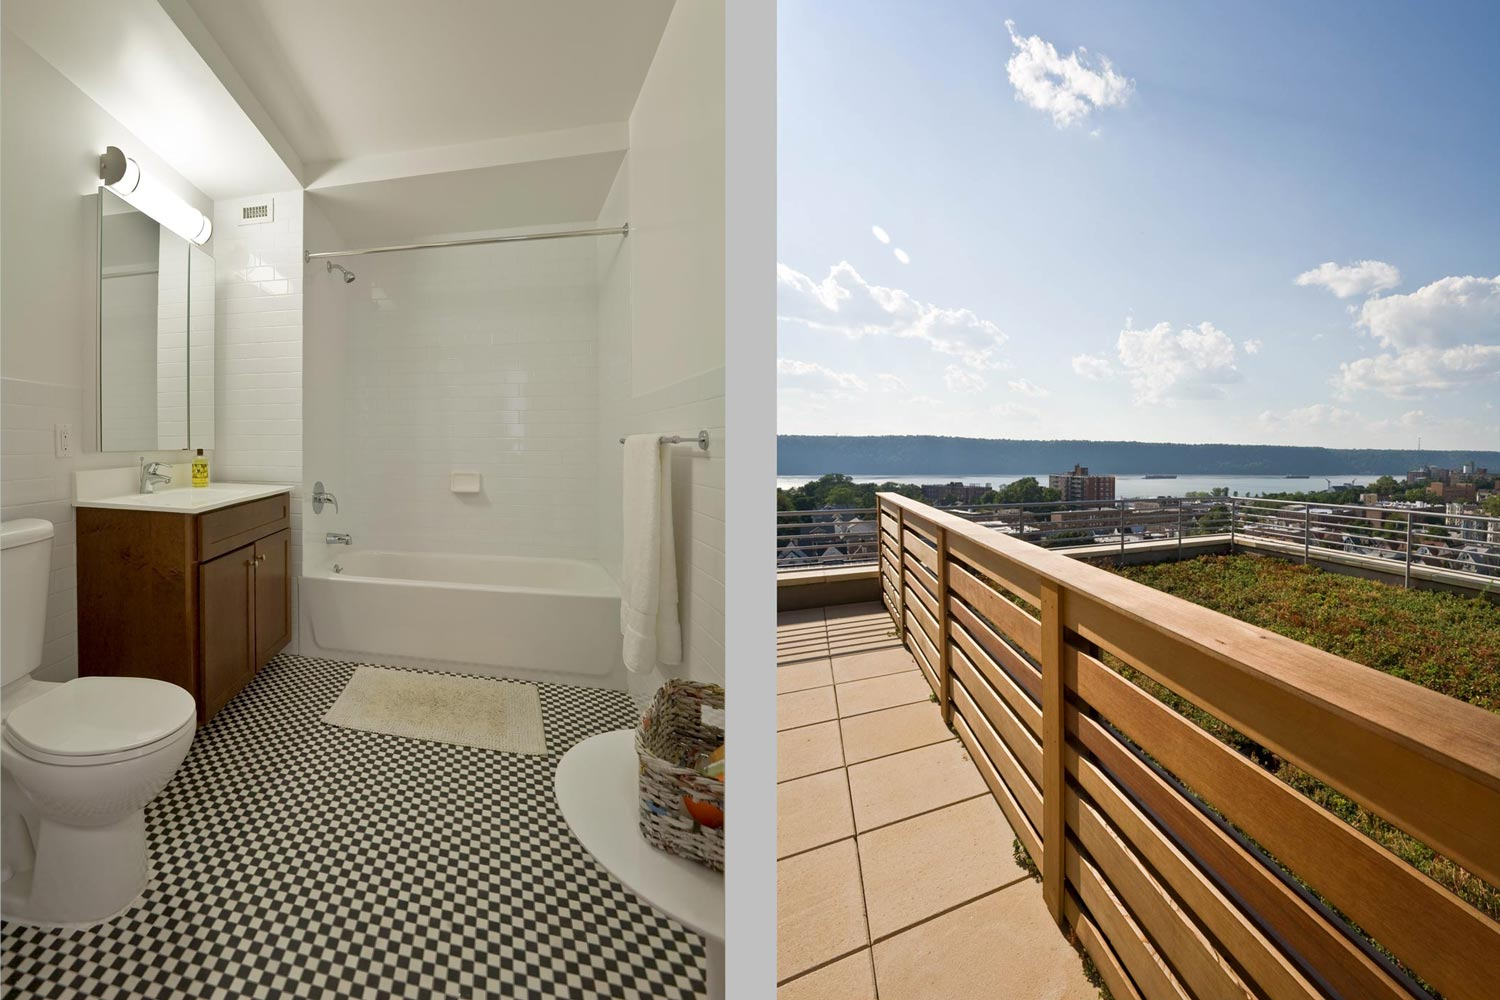 On-site amenities include several rooftop terraces, parking, laundry, a club/recreational room and gym, and play spaces.